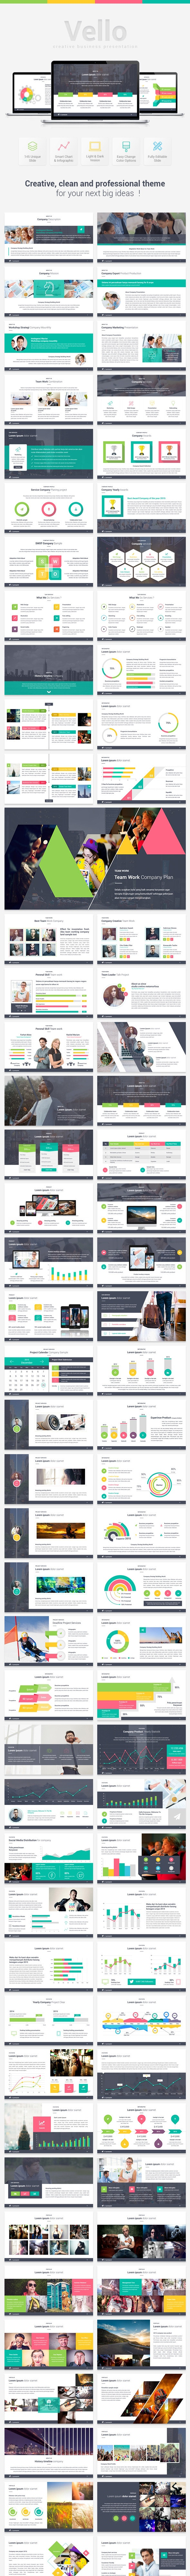 Vello Powerpoint Template - Business PowerPoint Templates